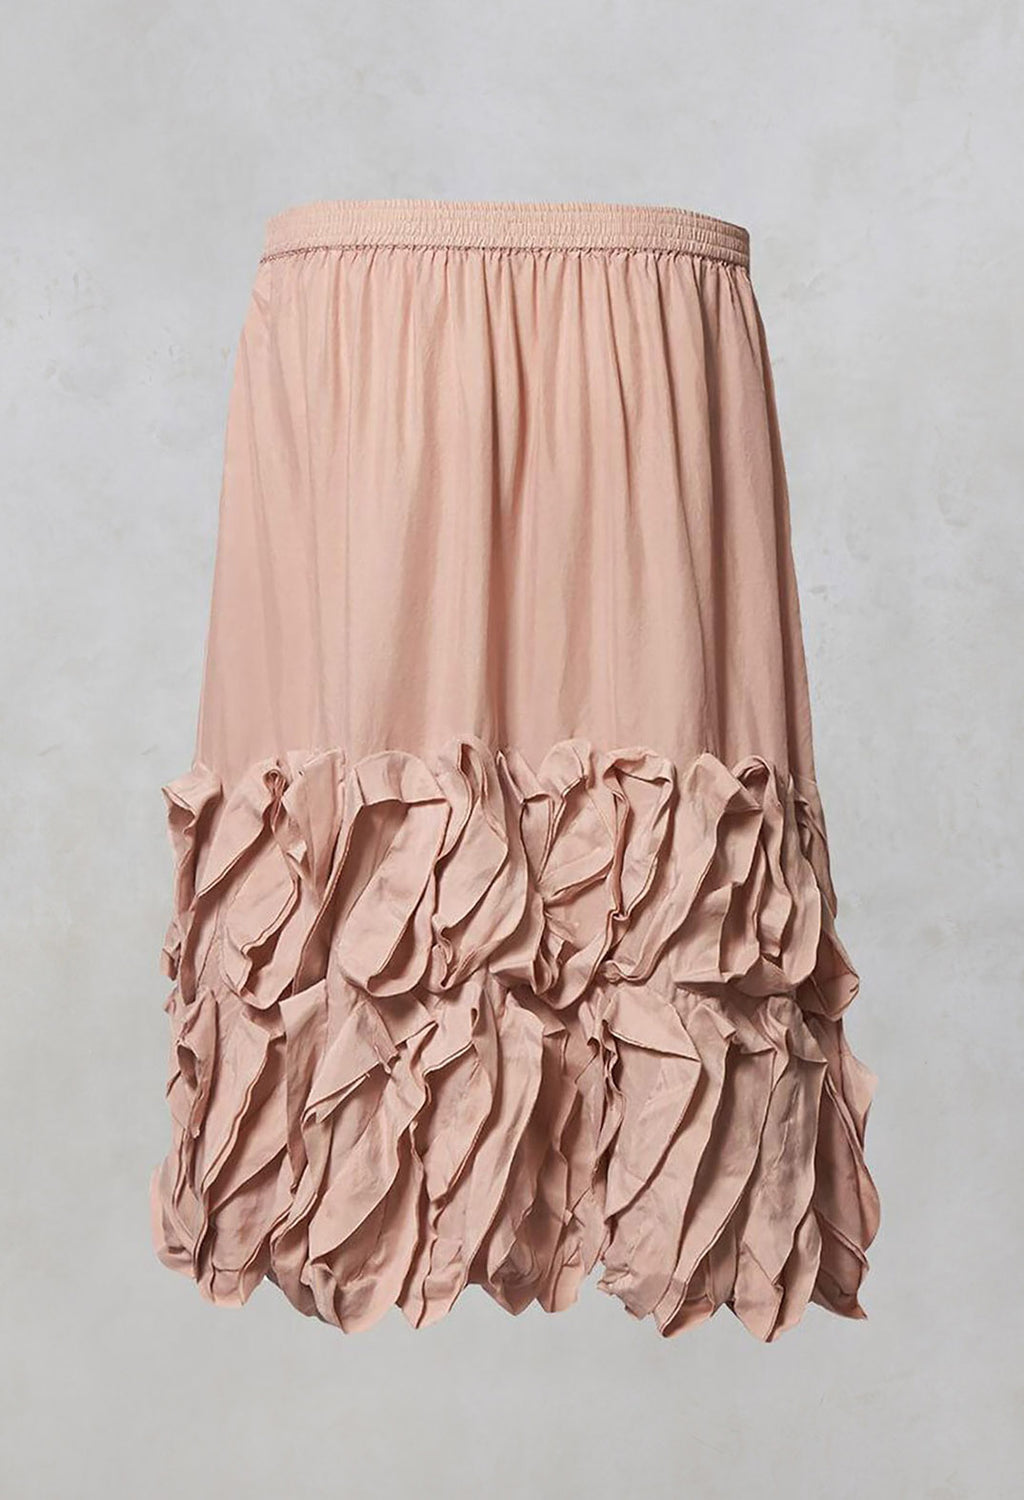 Elasticated Skirt with Ruffle Trim in Pale Pink